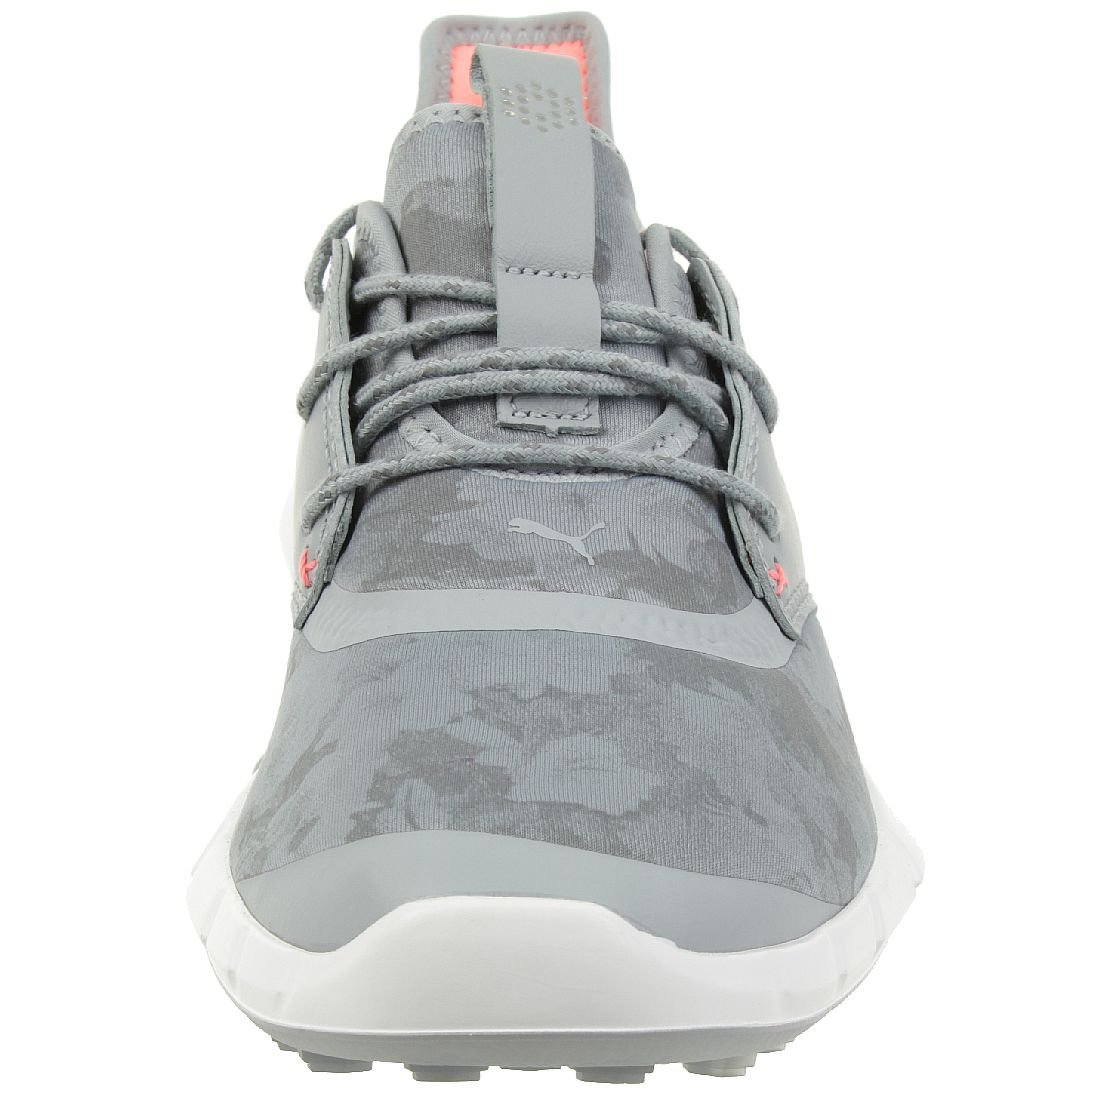 30879093b1bb05 Puma Ignite SL Sport Floral Golf Women Golfshoes 190171 02: Amazon.co.uk:  Sports & Outdoors